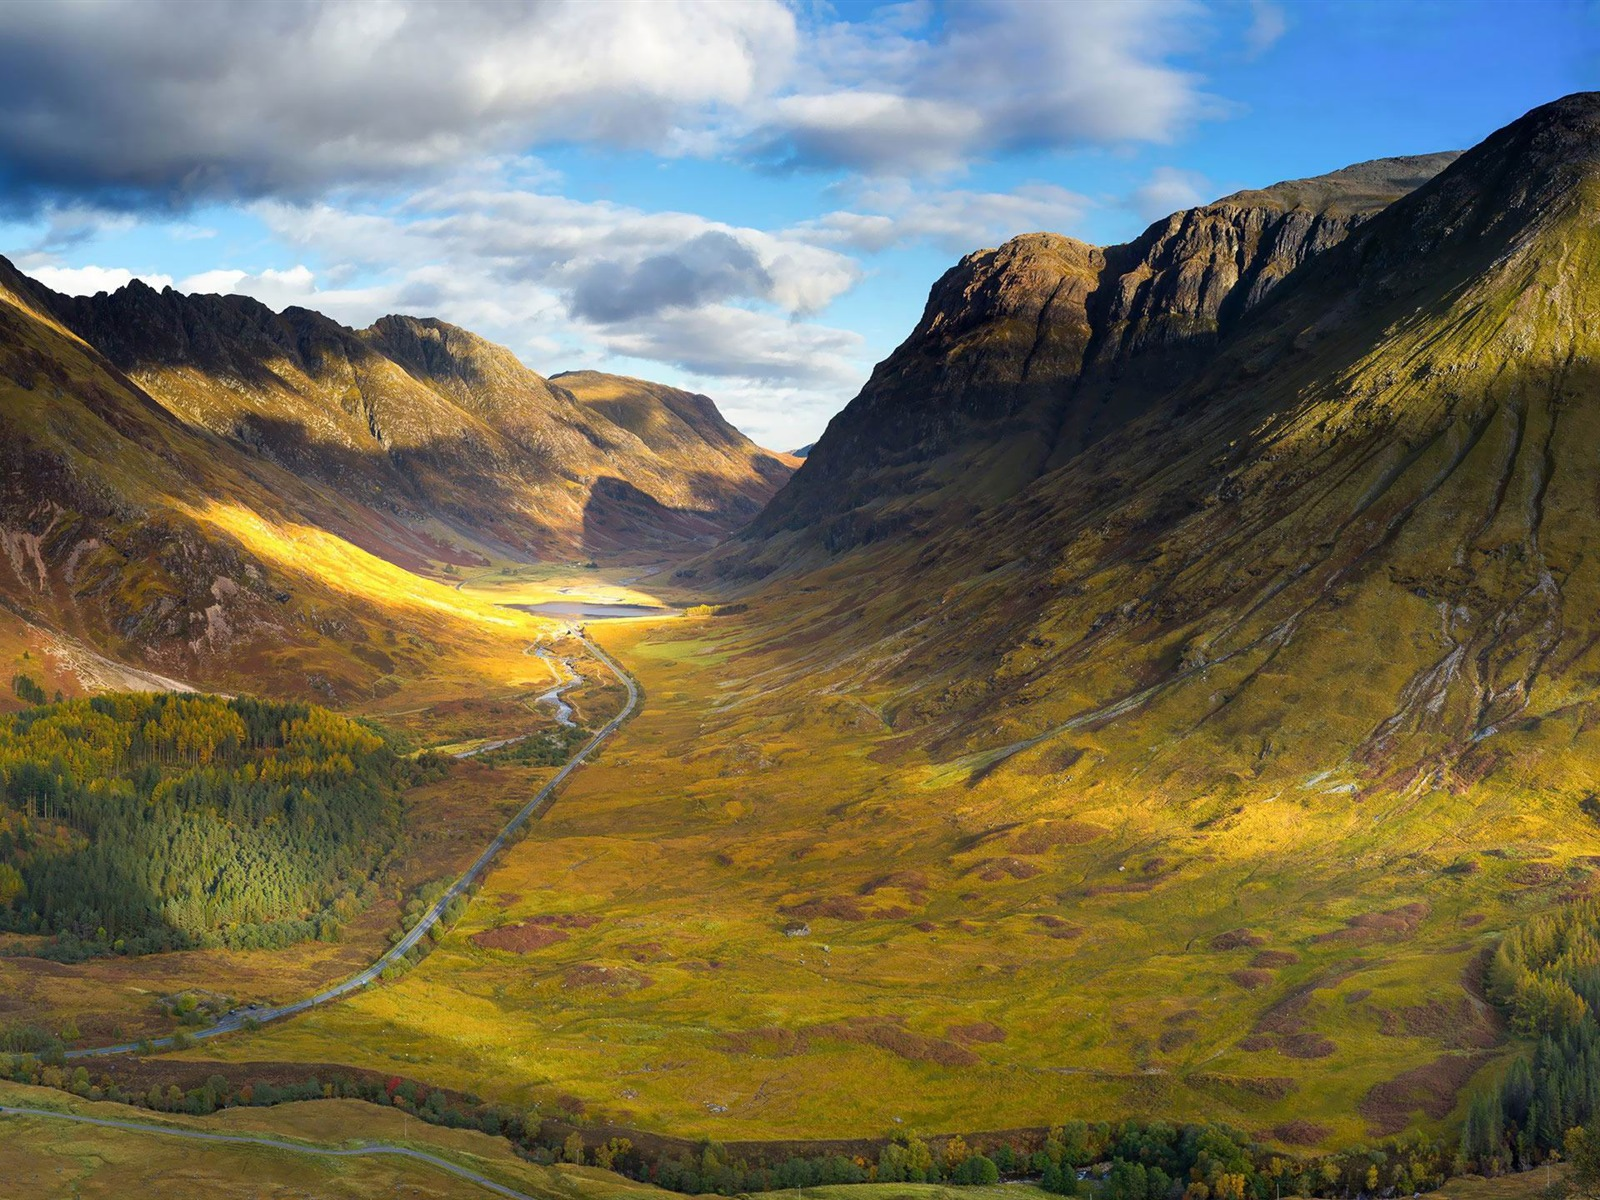 Beautiful Animal Wallpapers Mountain Valley Landscape Hd Widescreen Wallpaper Preview